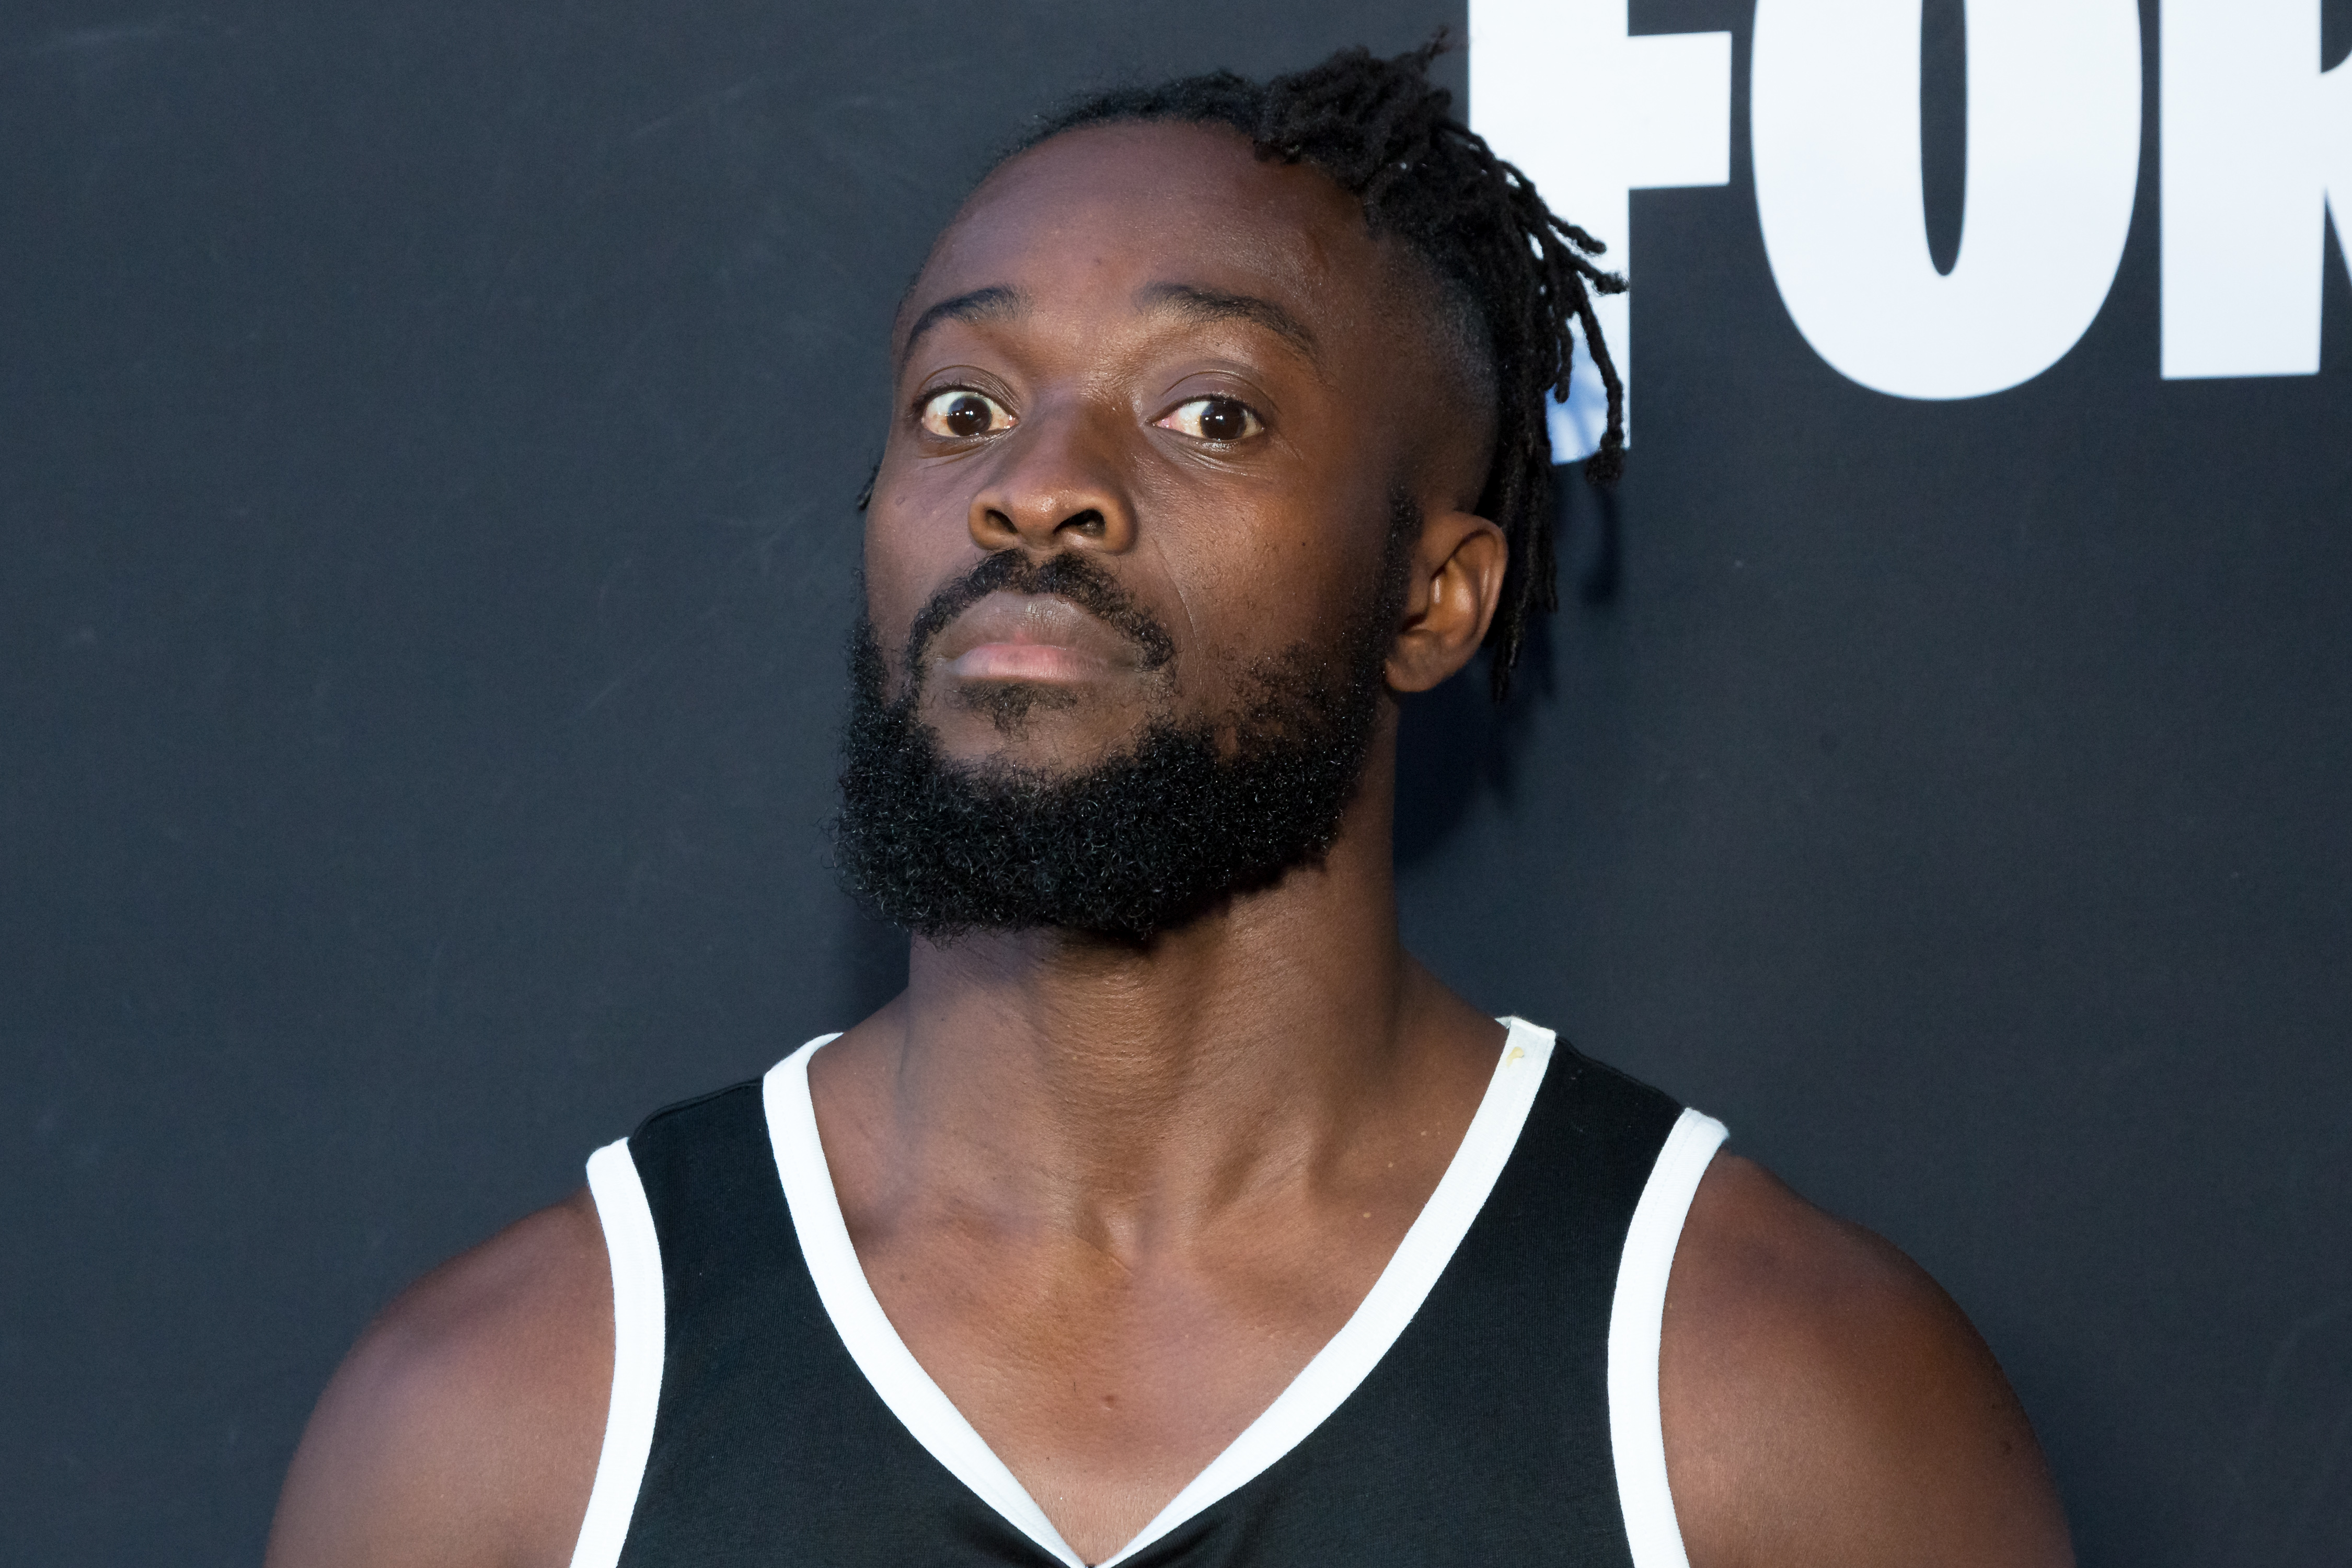 Kofi Kingston